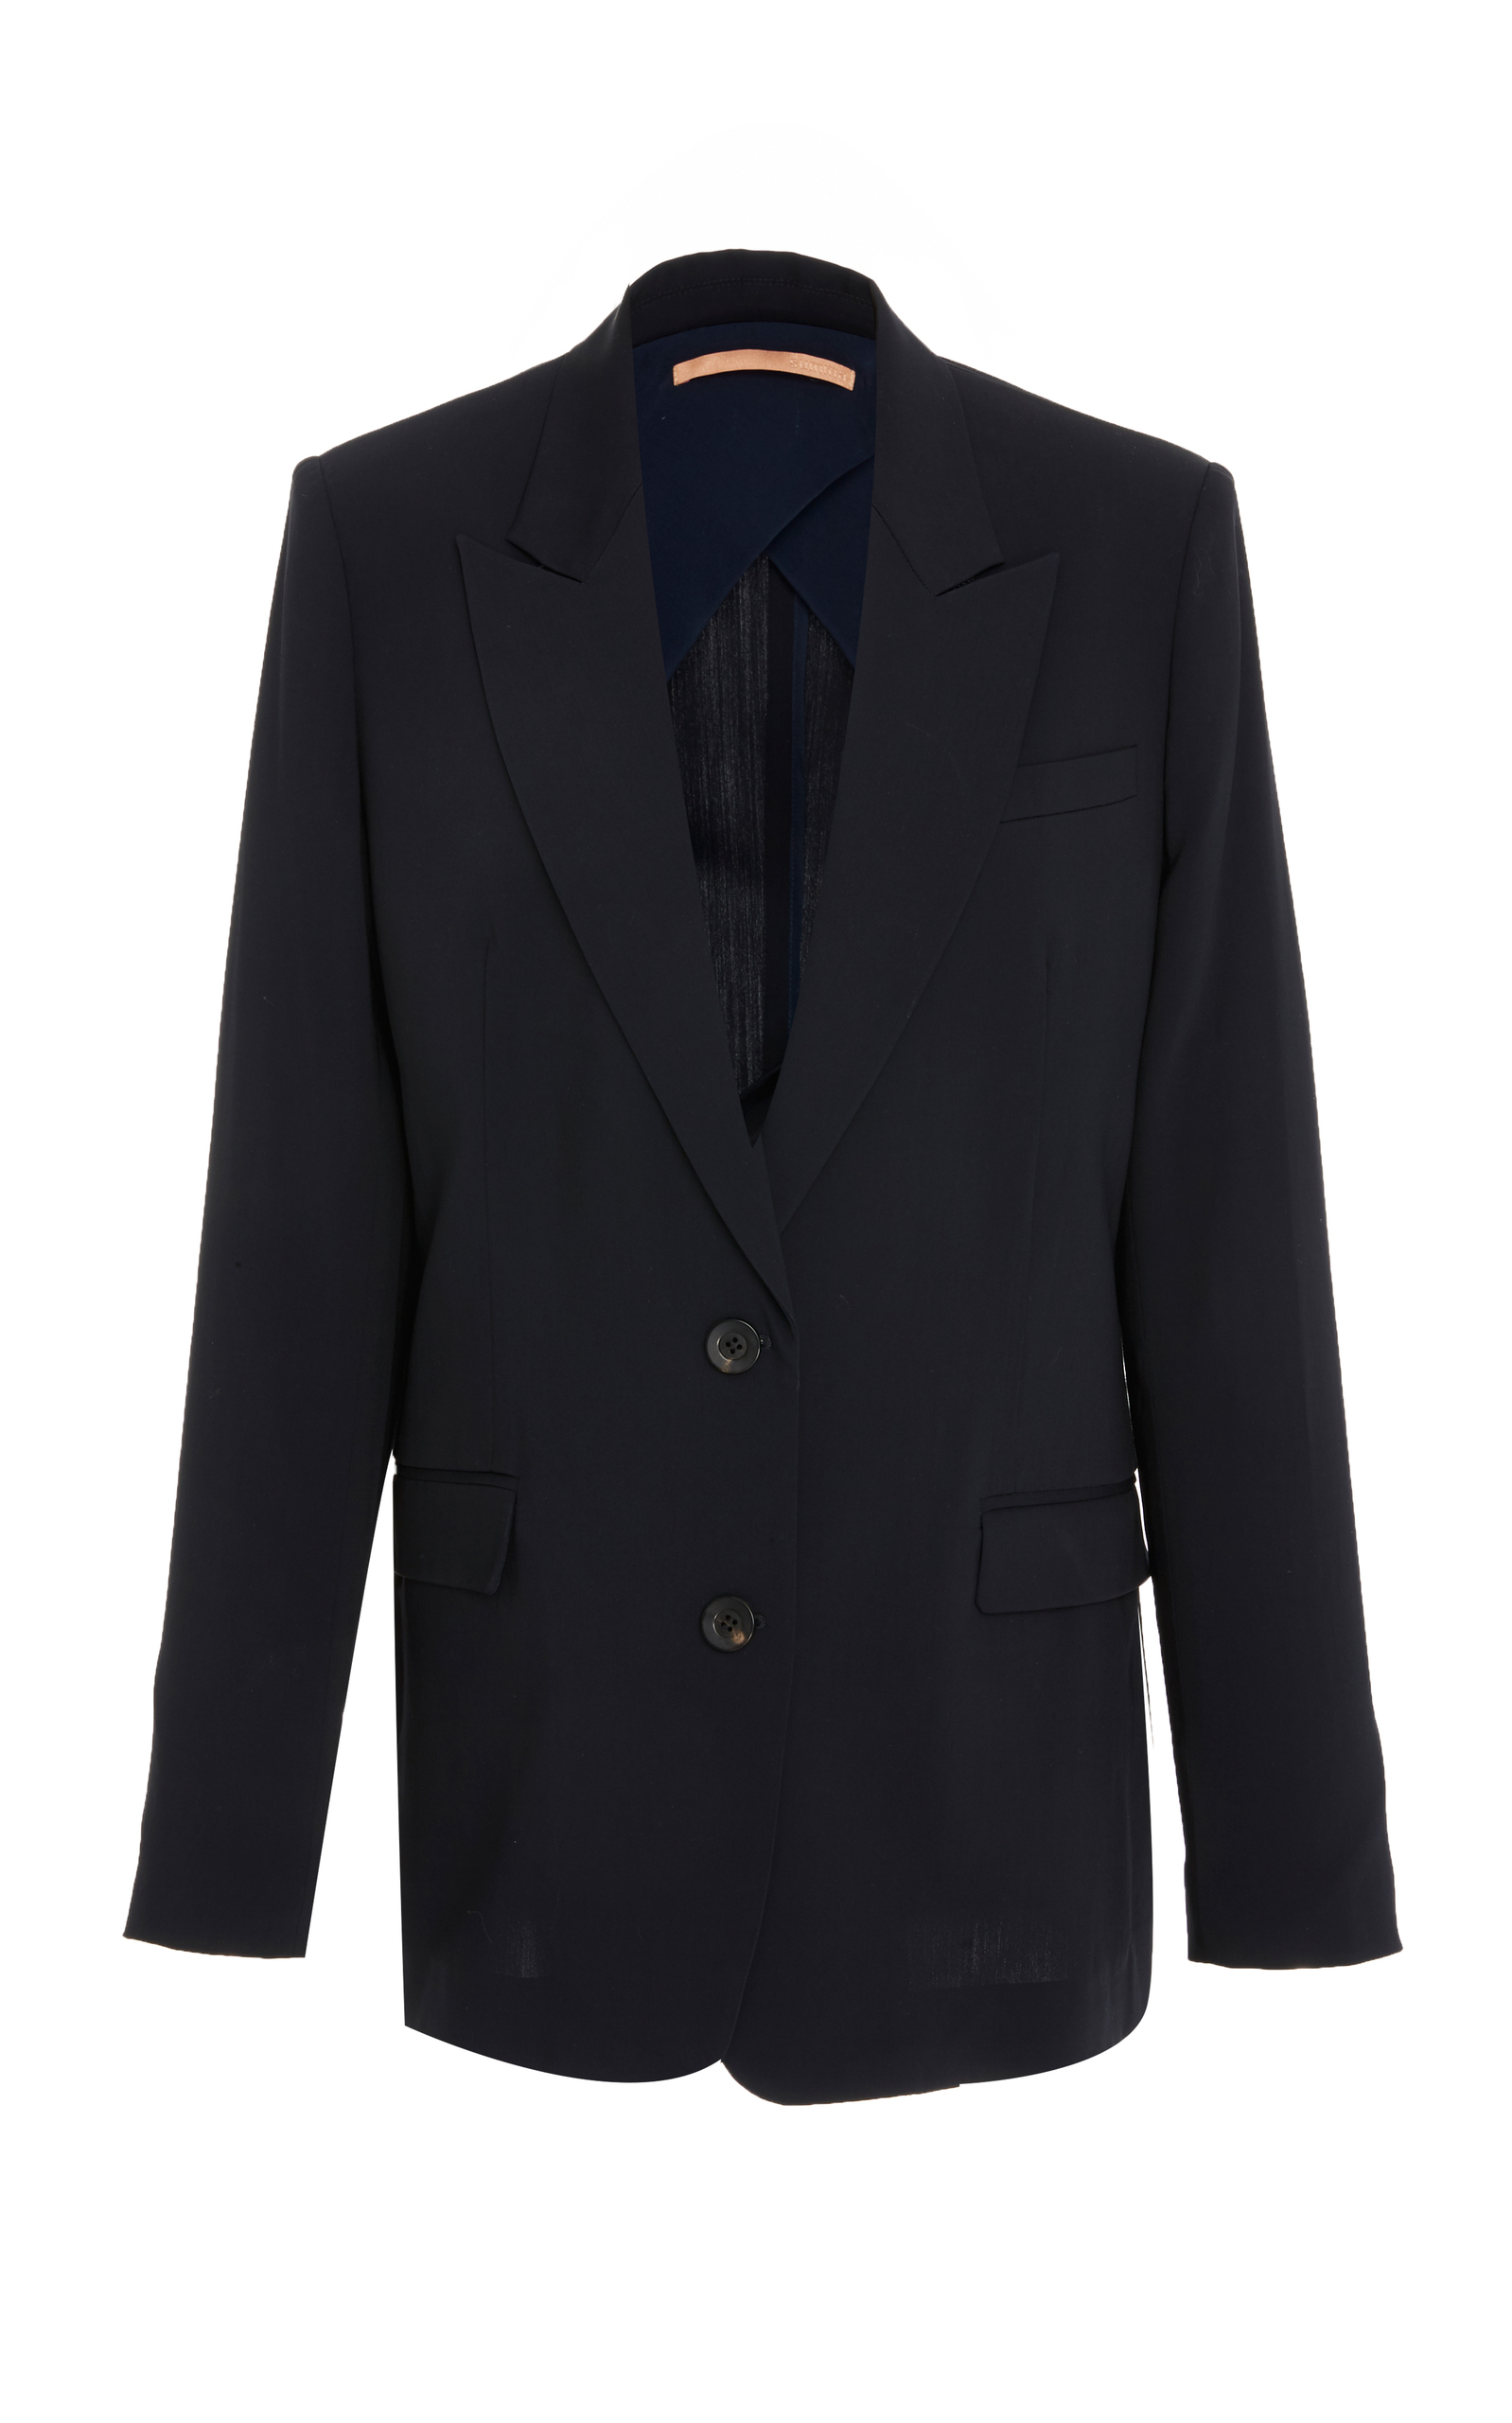 SUMMA TWO BUTTON SINGLE BREASTED JACKET